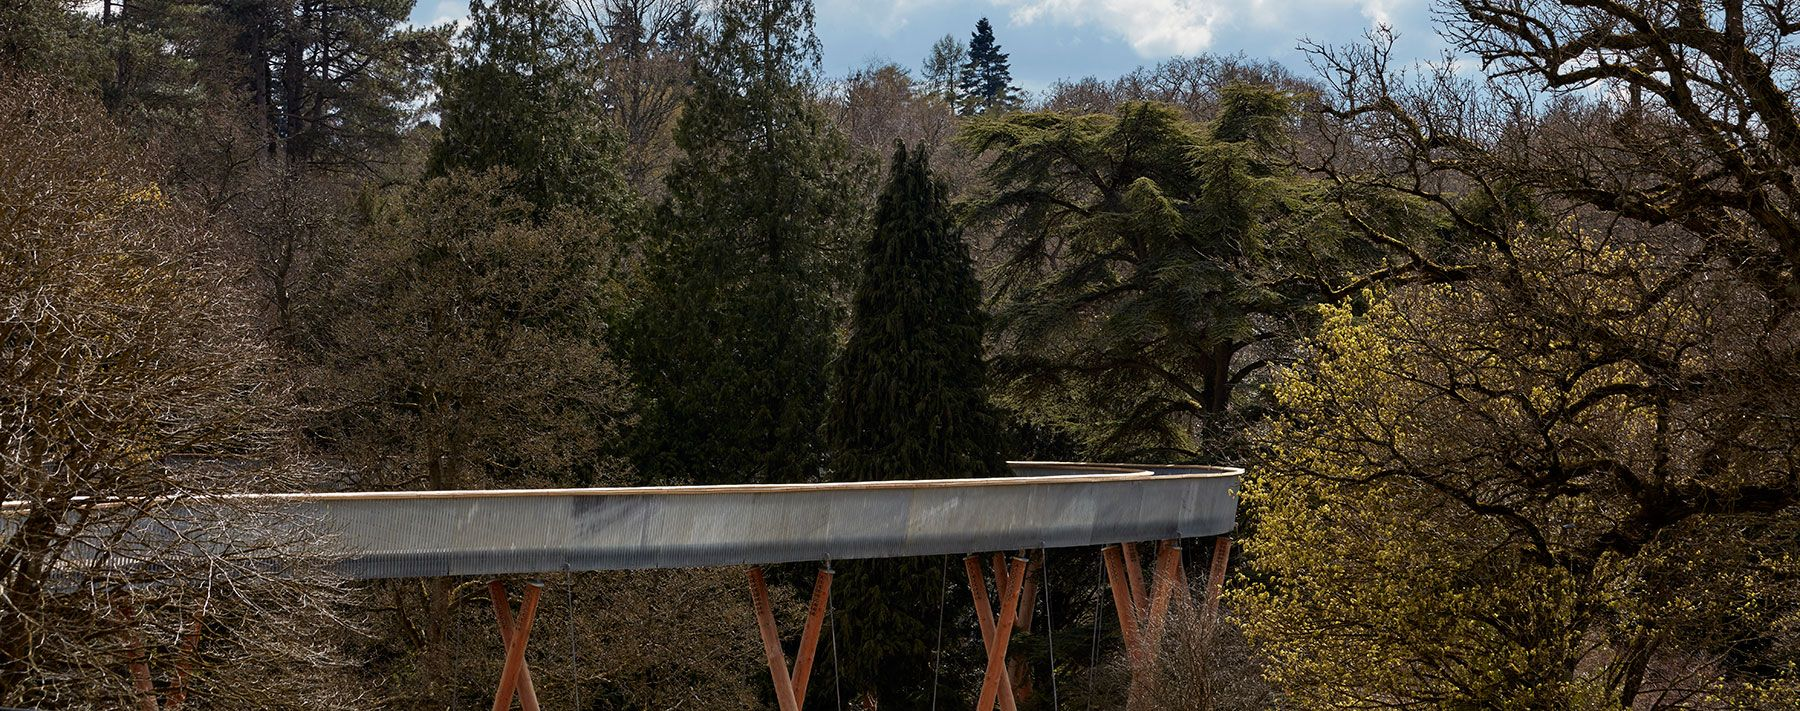 treetop walkway by glenn howells architects winds through westonbirt arboretum all images by rob parrish